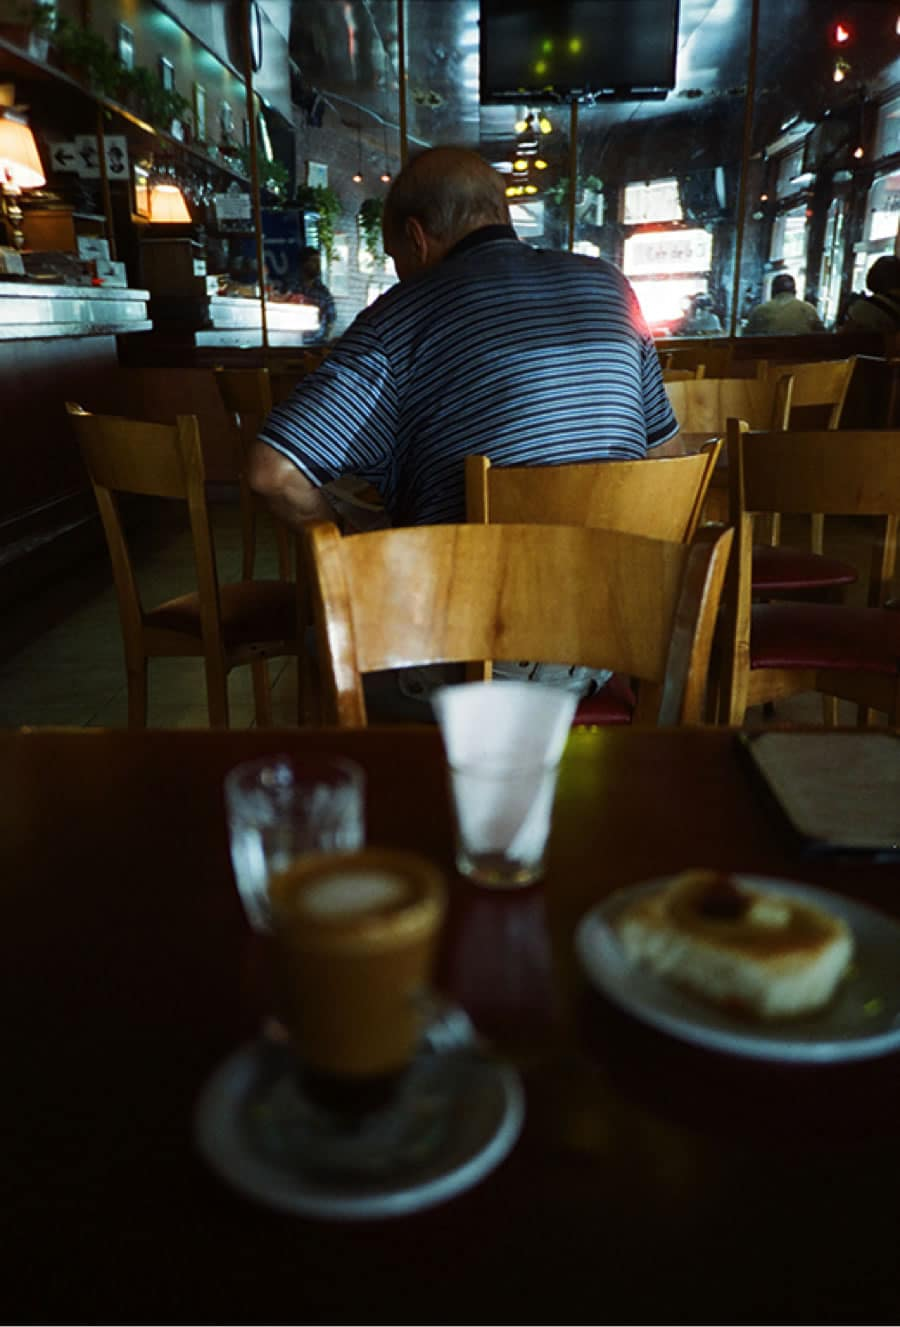 Cinestill 800T shot with a Lomo LCA+ in a Buenos Aires café.